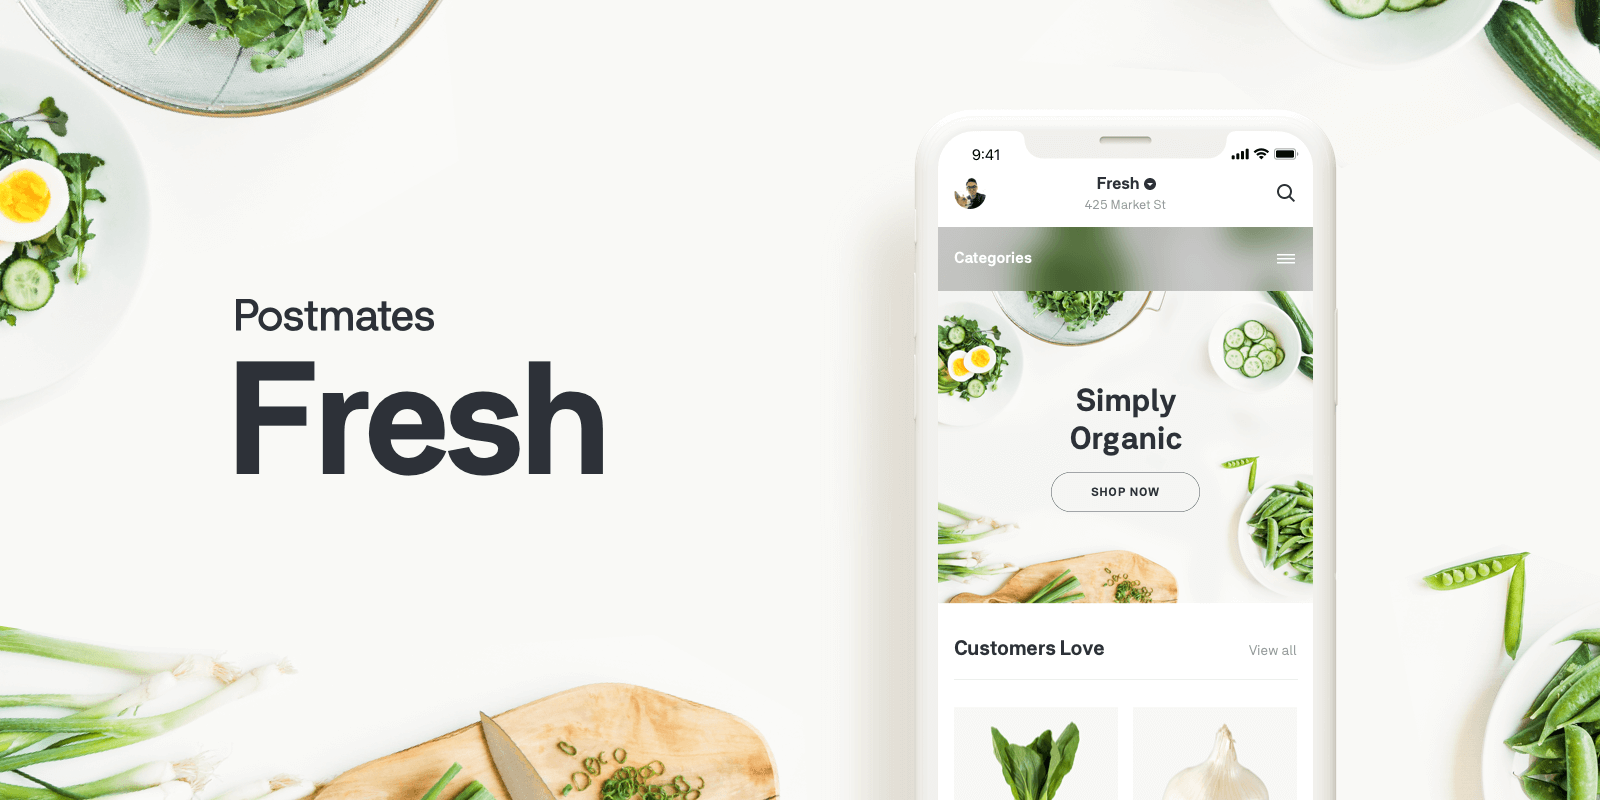 Postmates Launches Grocery Delivery Service And Revamped App